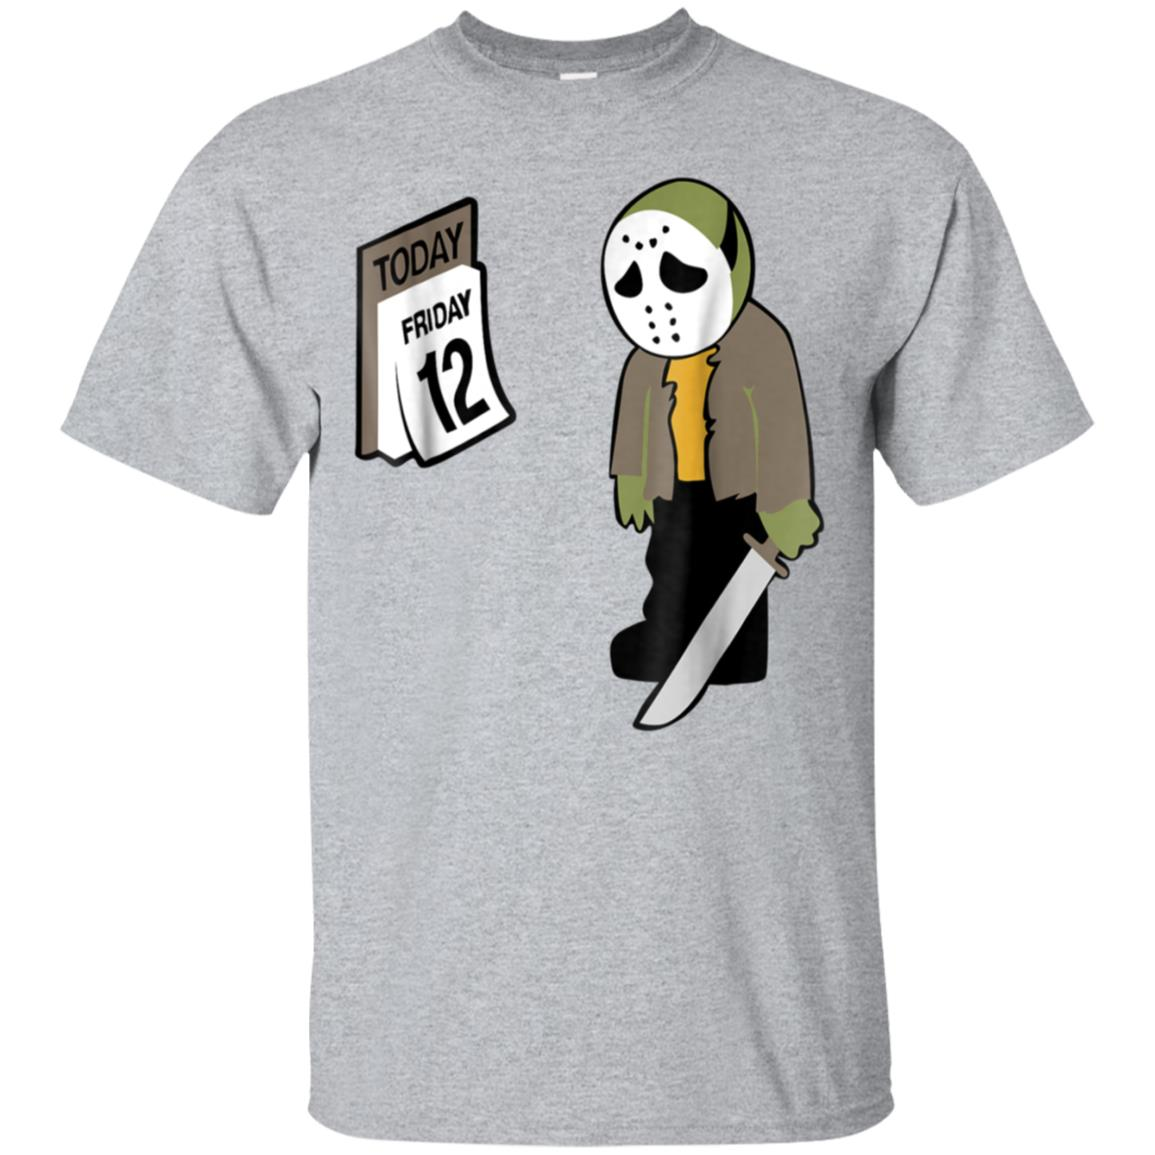 Jason-Voorhees-Friday-The-12th Shirt 99promocode